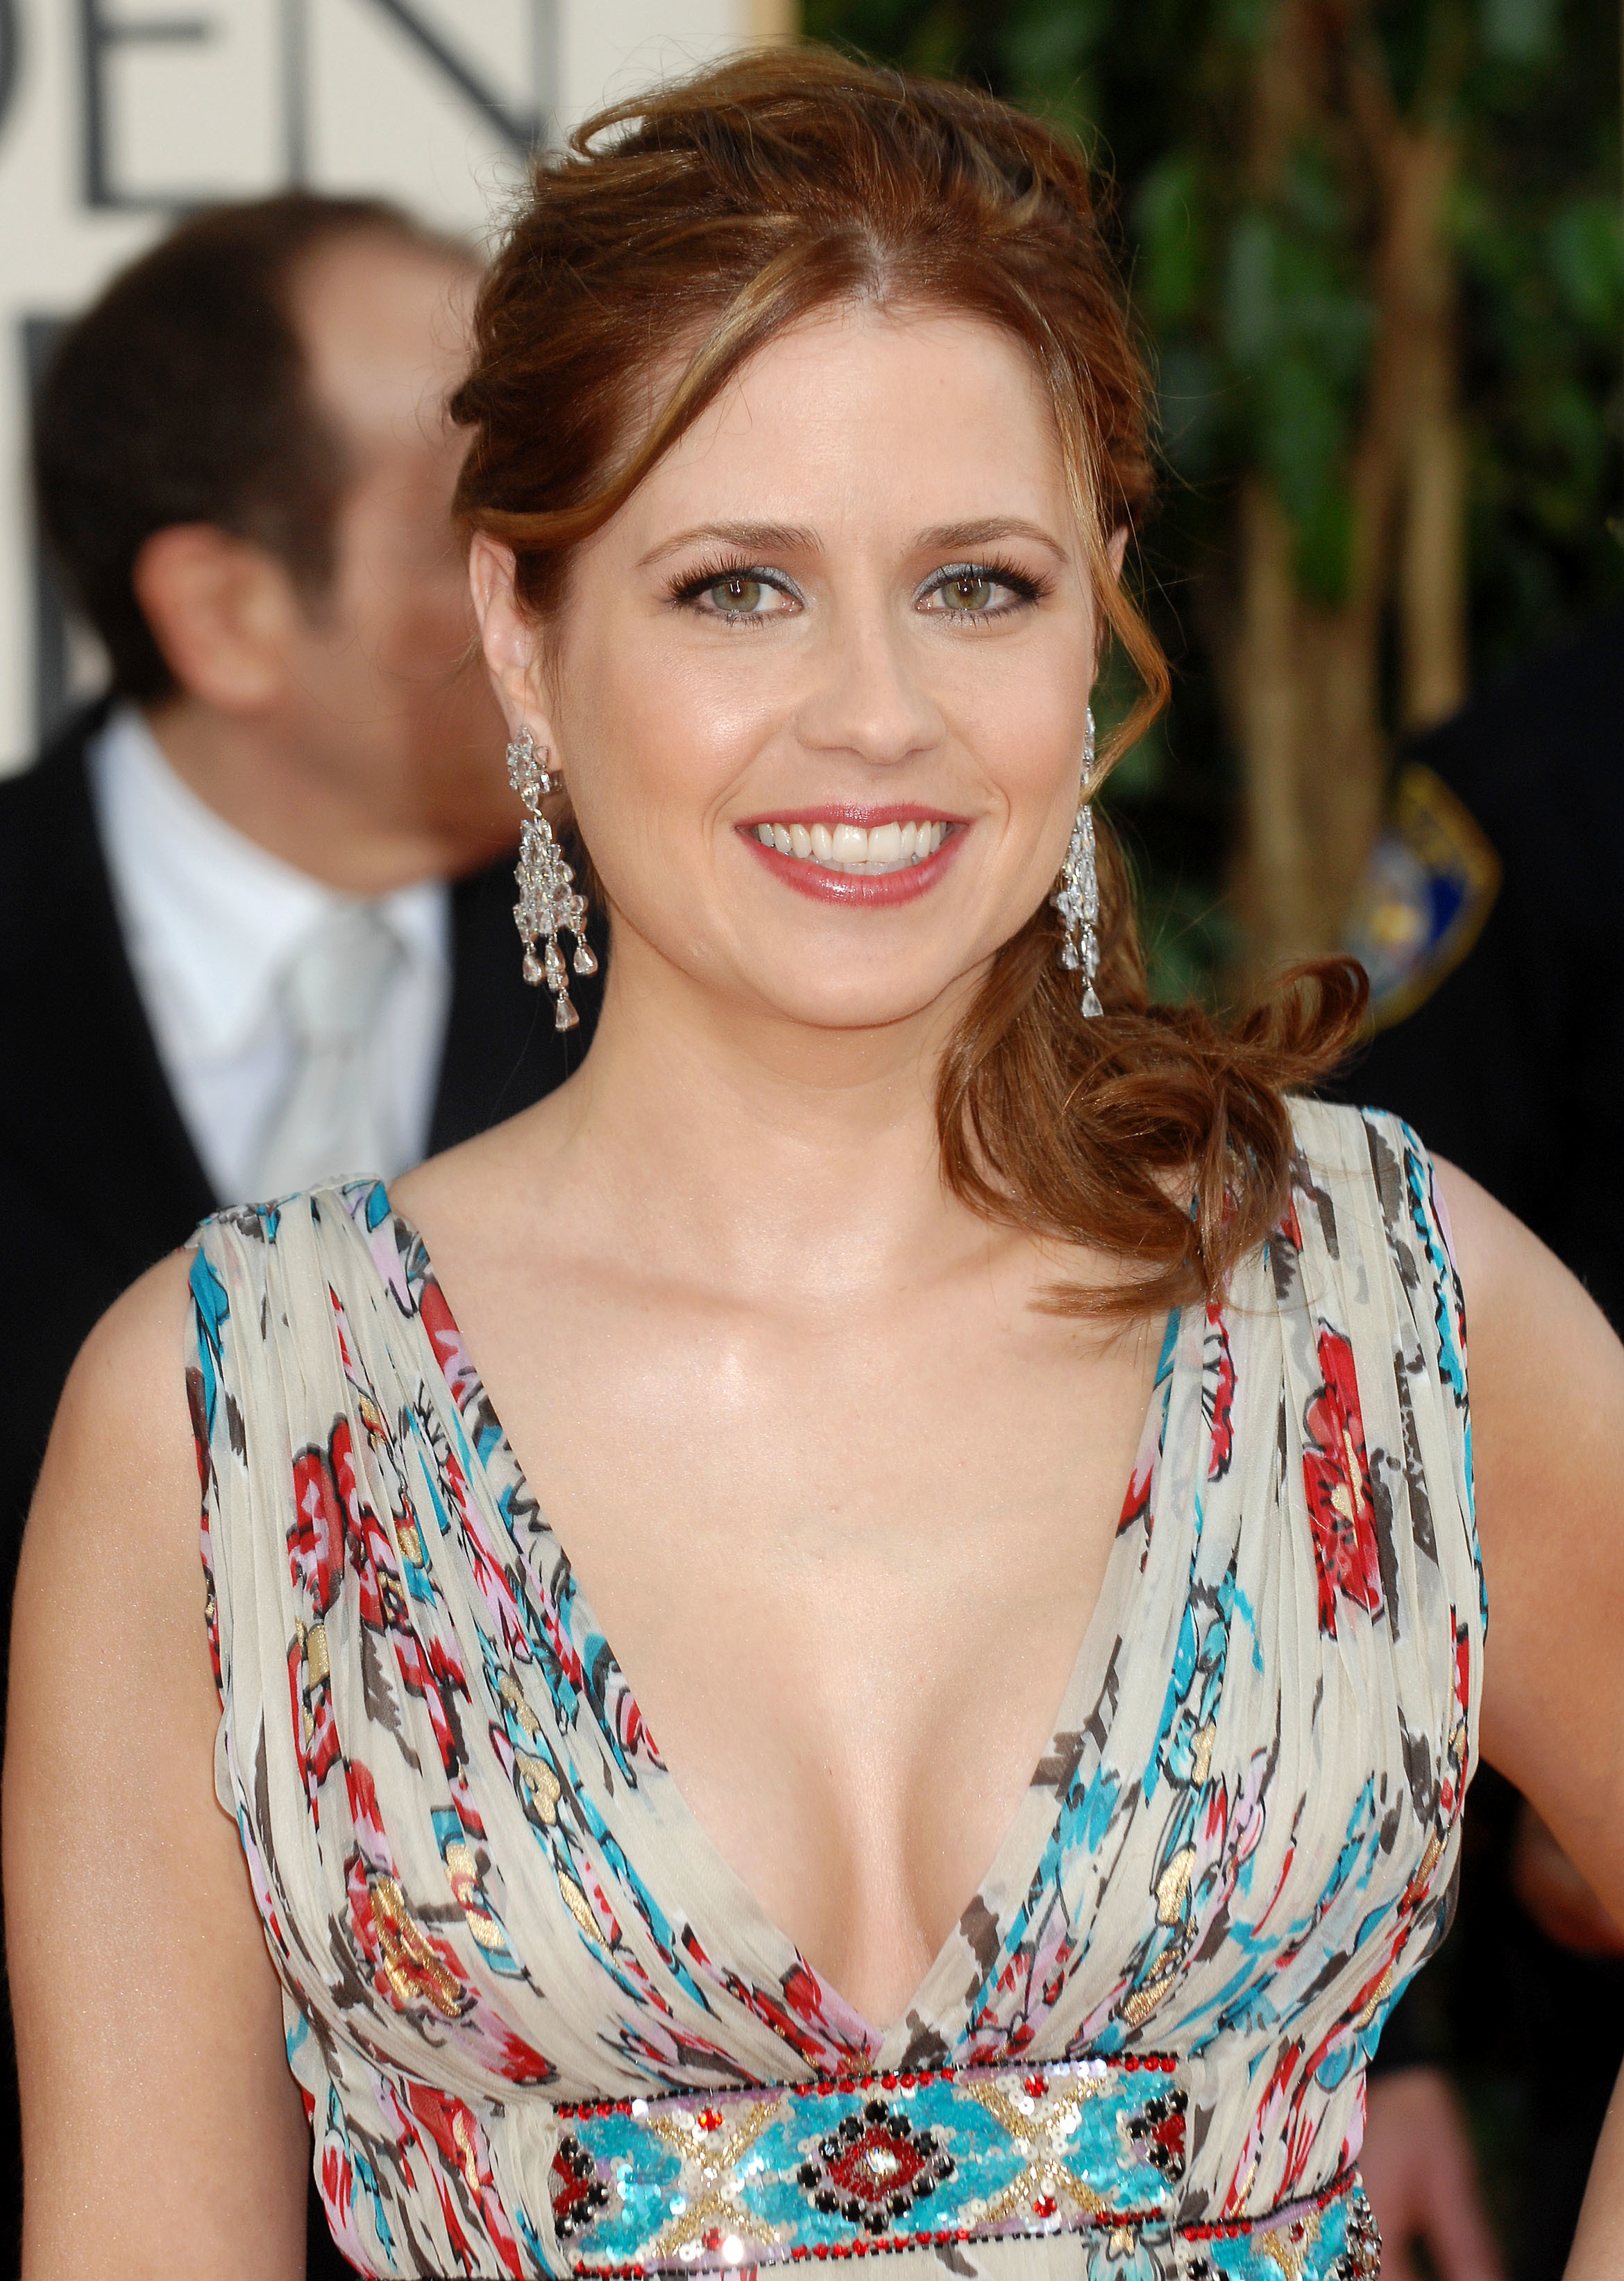 Actress jenna fischer earrings HD Wallpaper